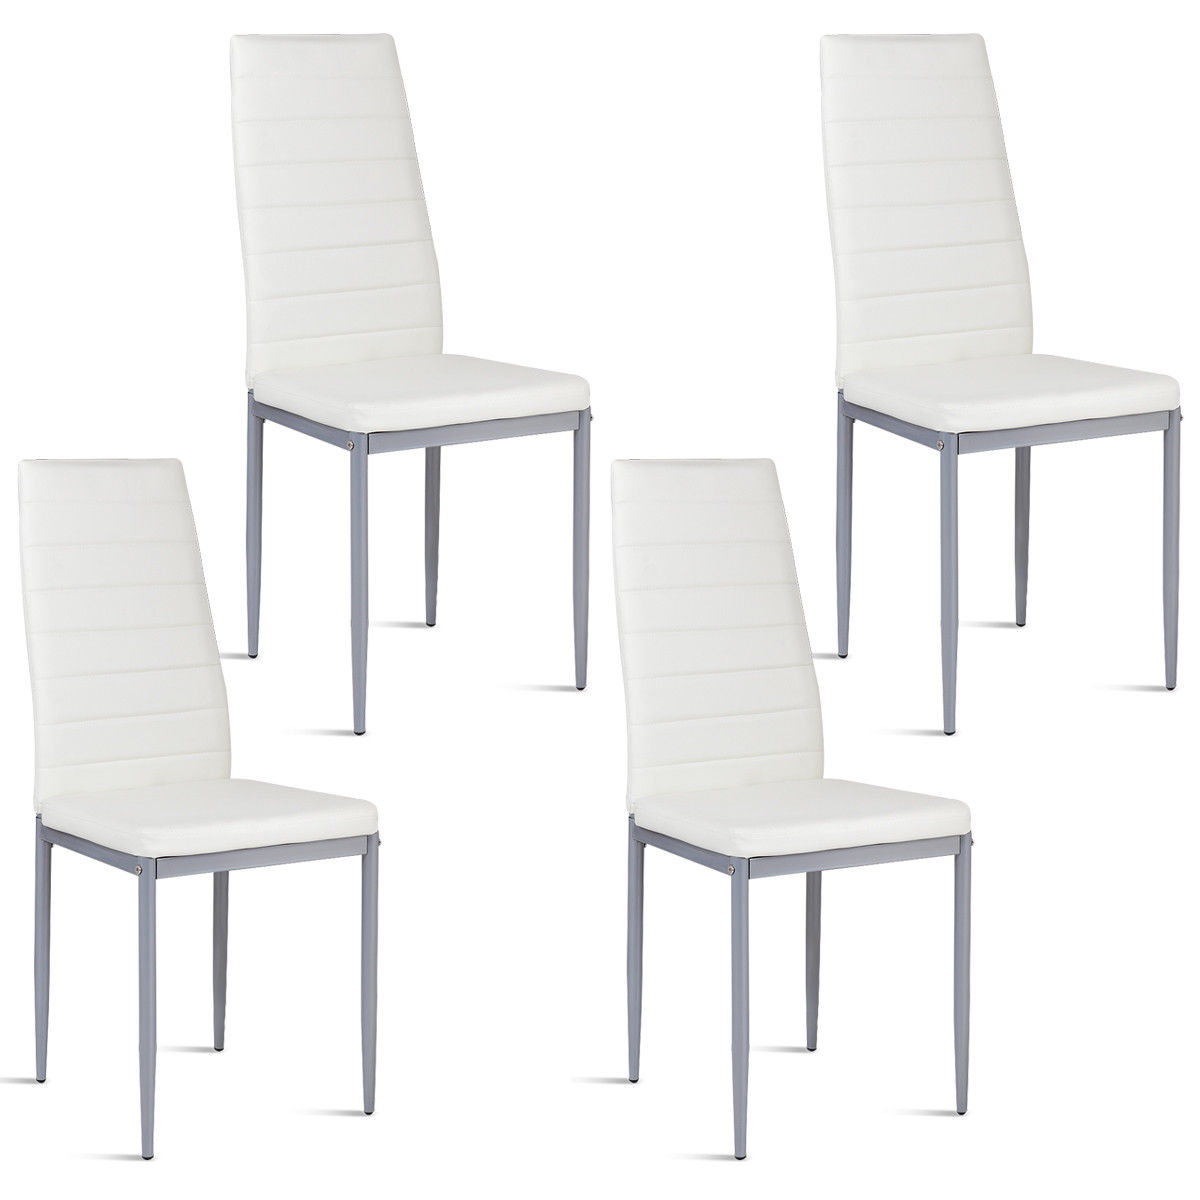 white leather chairs dining graco hook on table high chair costway set of 4 pu side elegant design home furniture